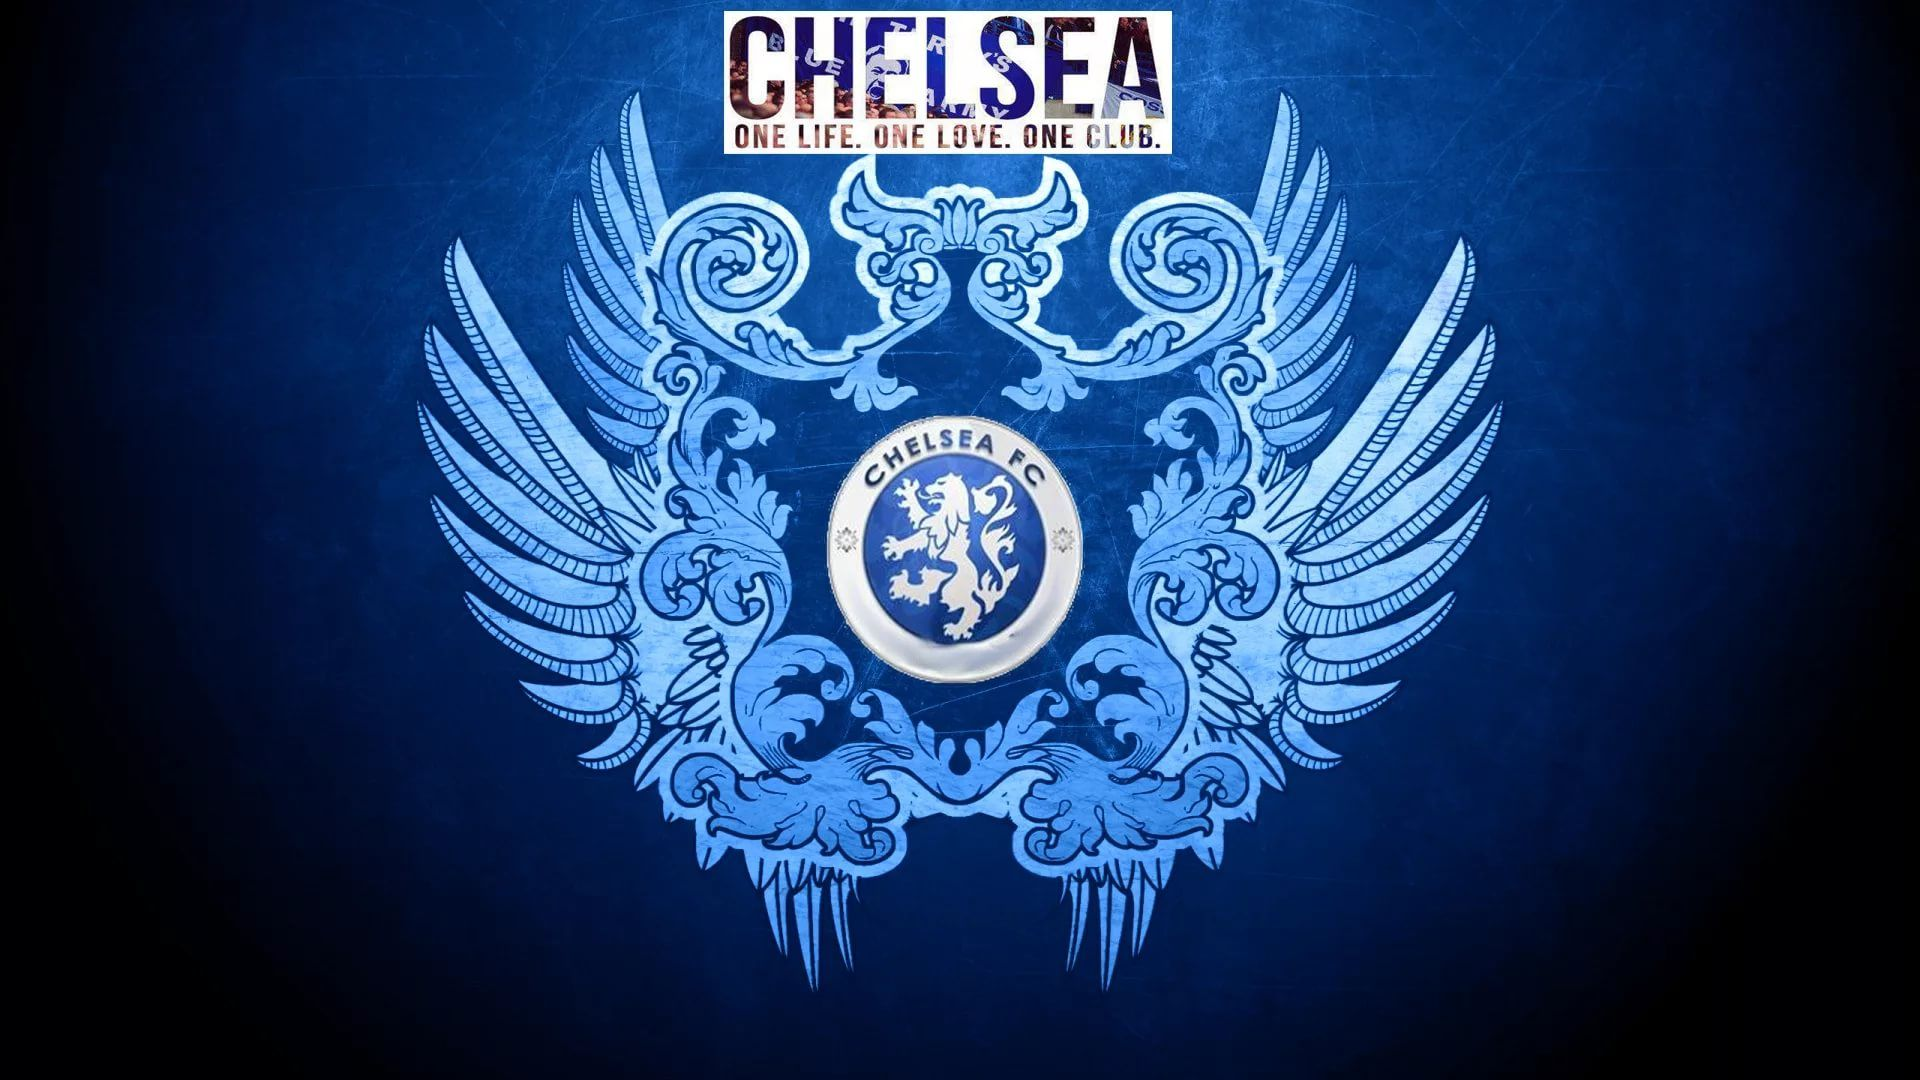 Chelsea hd wallpaper 1080p for pc